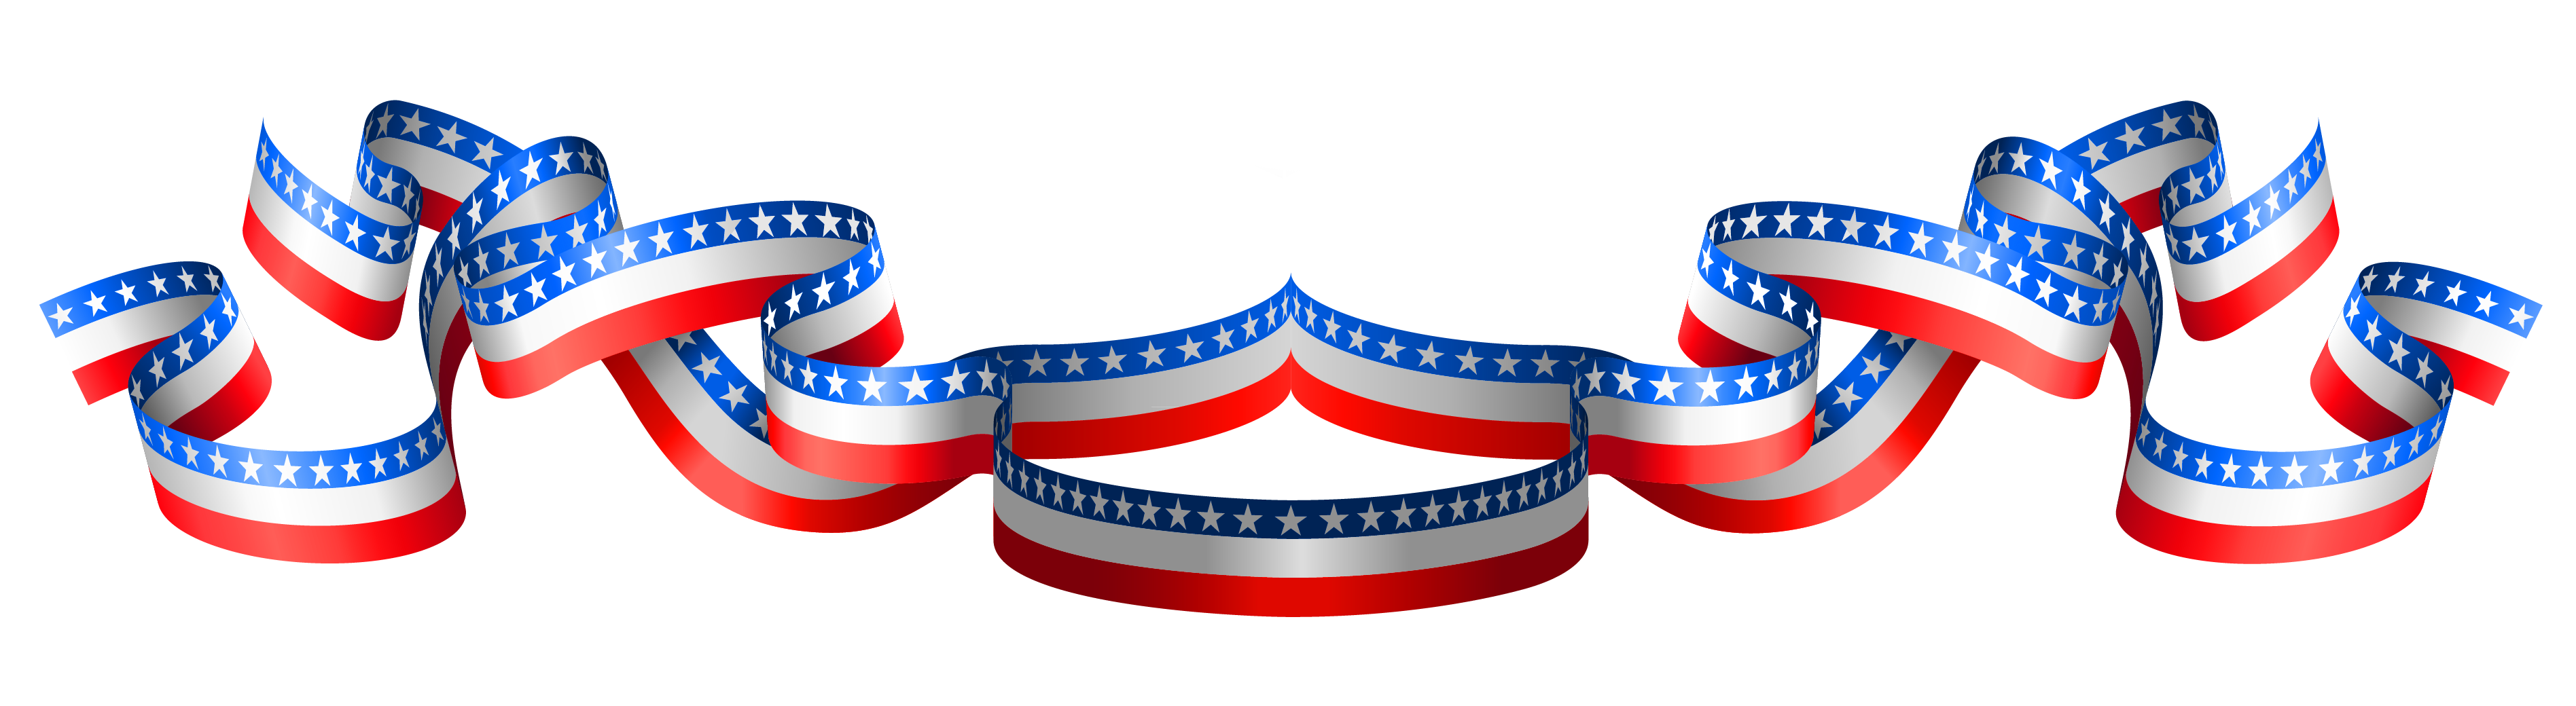 American Flag clipart flower Size Flag View Gallery PNG